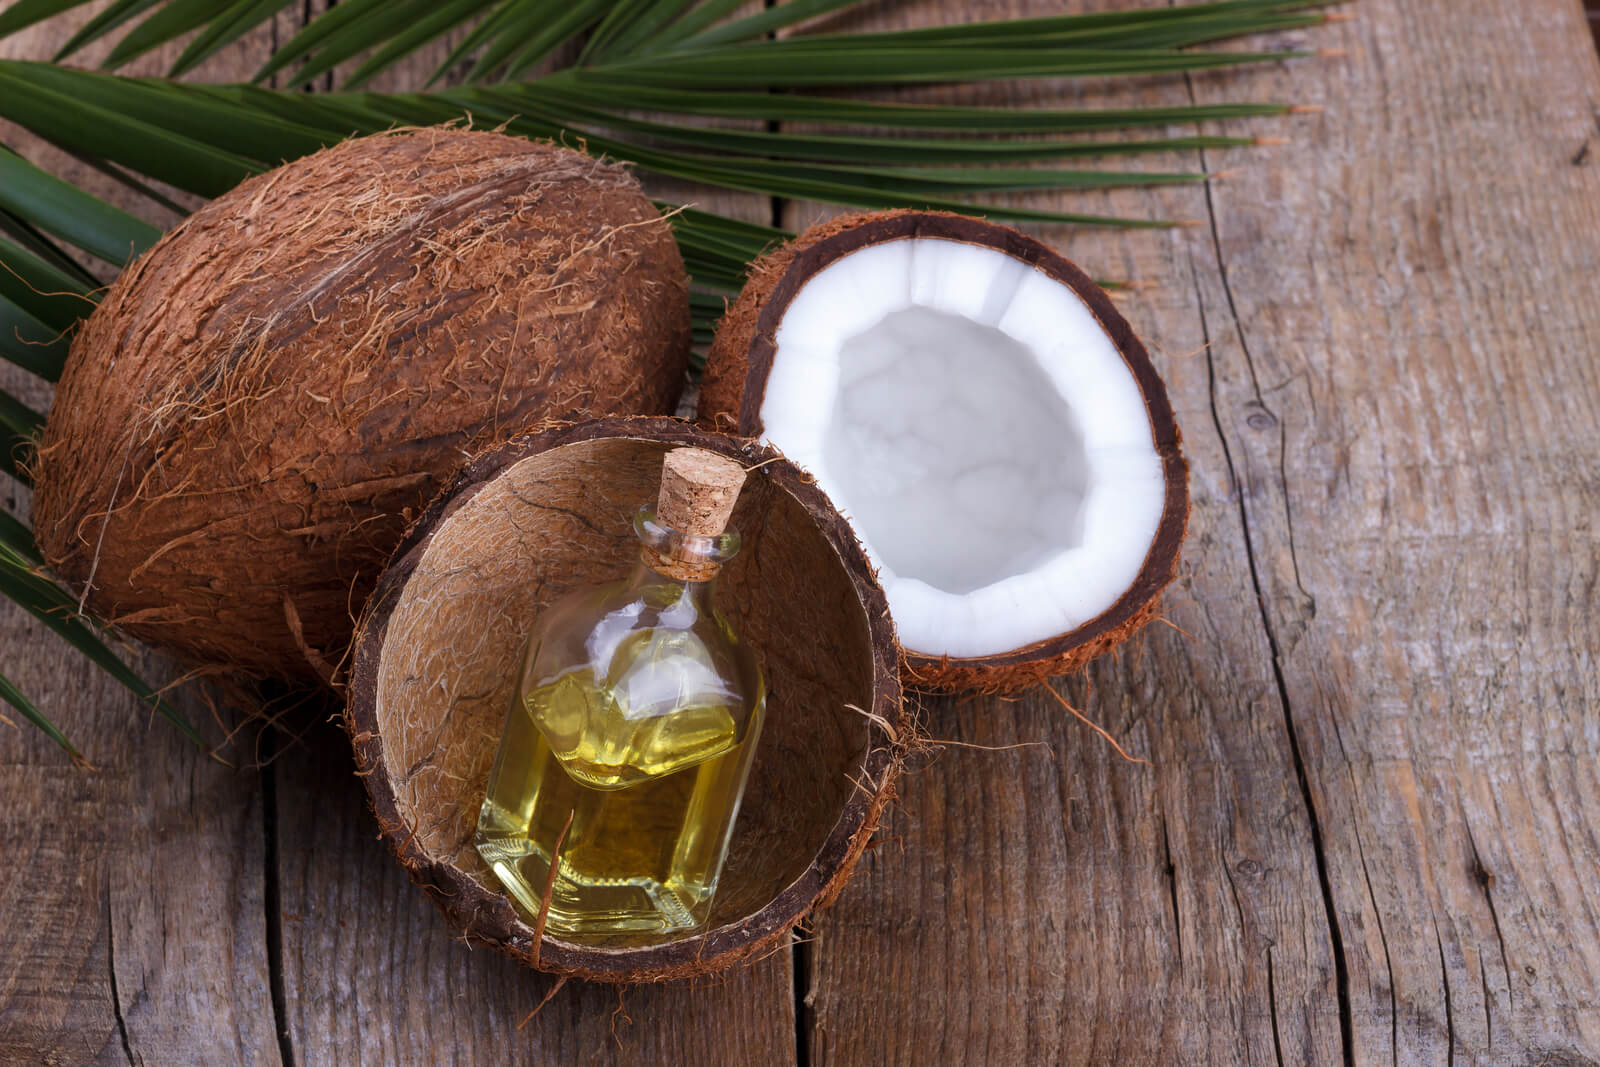 Undecylenic can be added to oils like coconut oil along with other yeast infection fighting herbs